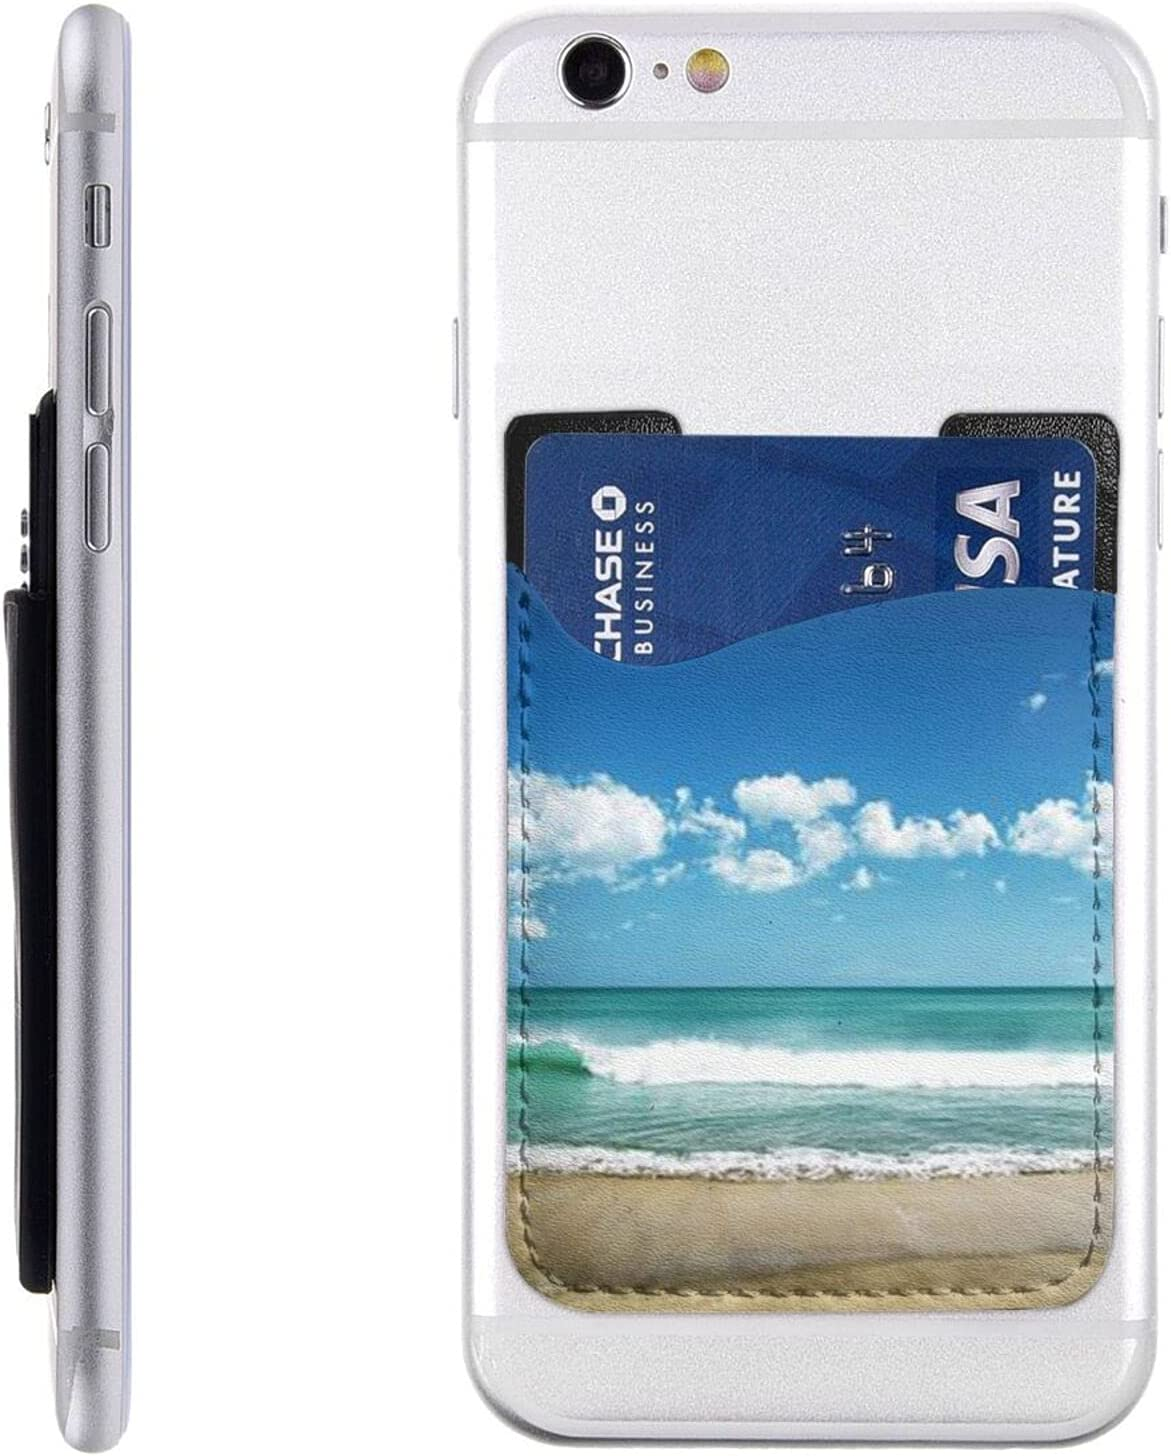 Sandy Spring new work one New item after another Beach Phone Card Holder Sl Wallet Cell Stick On